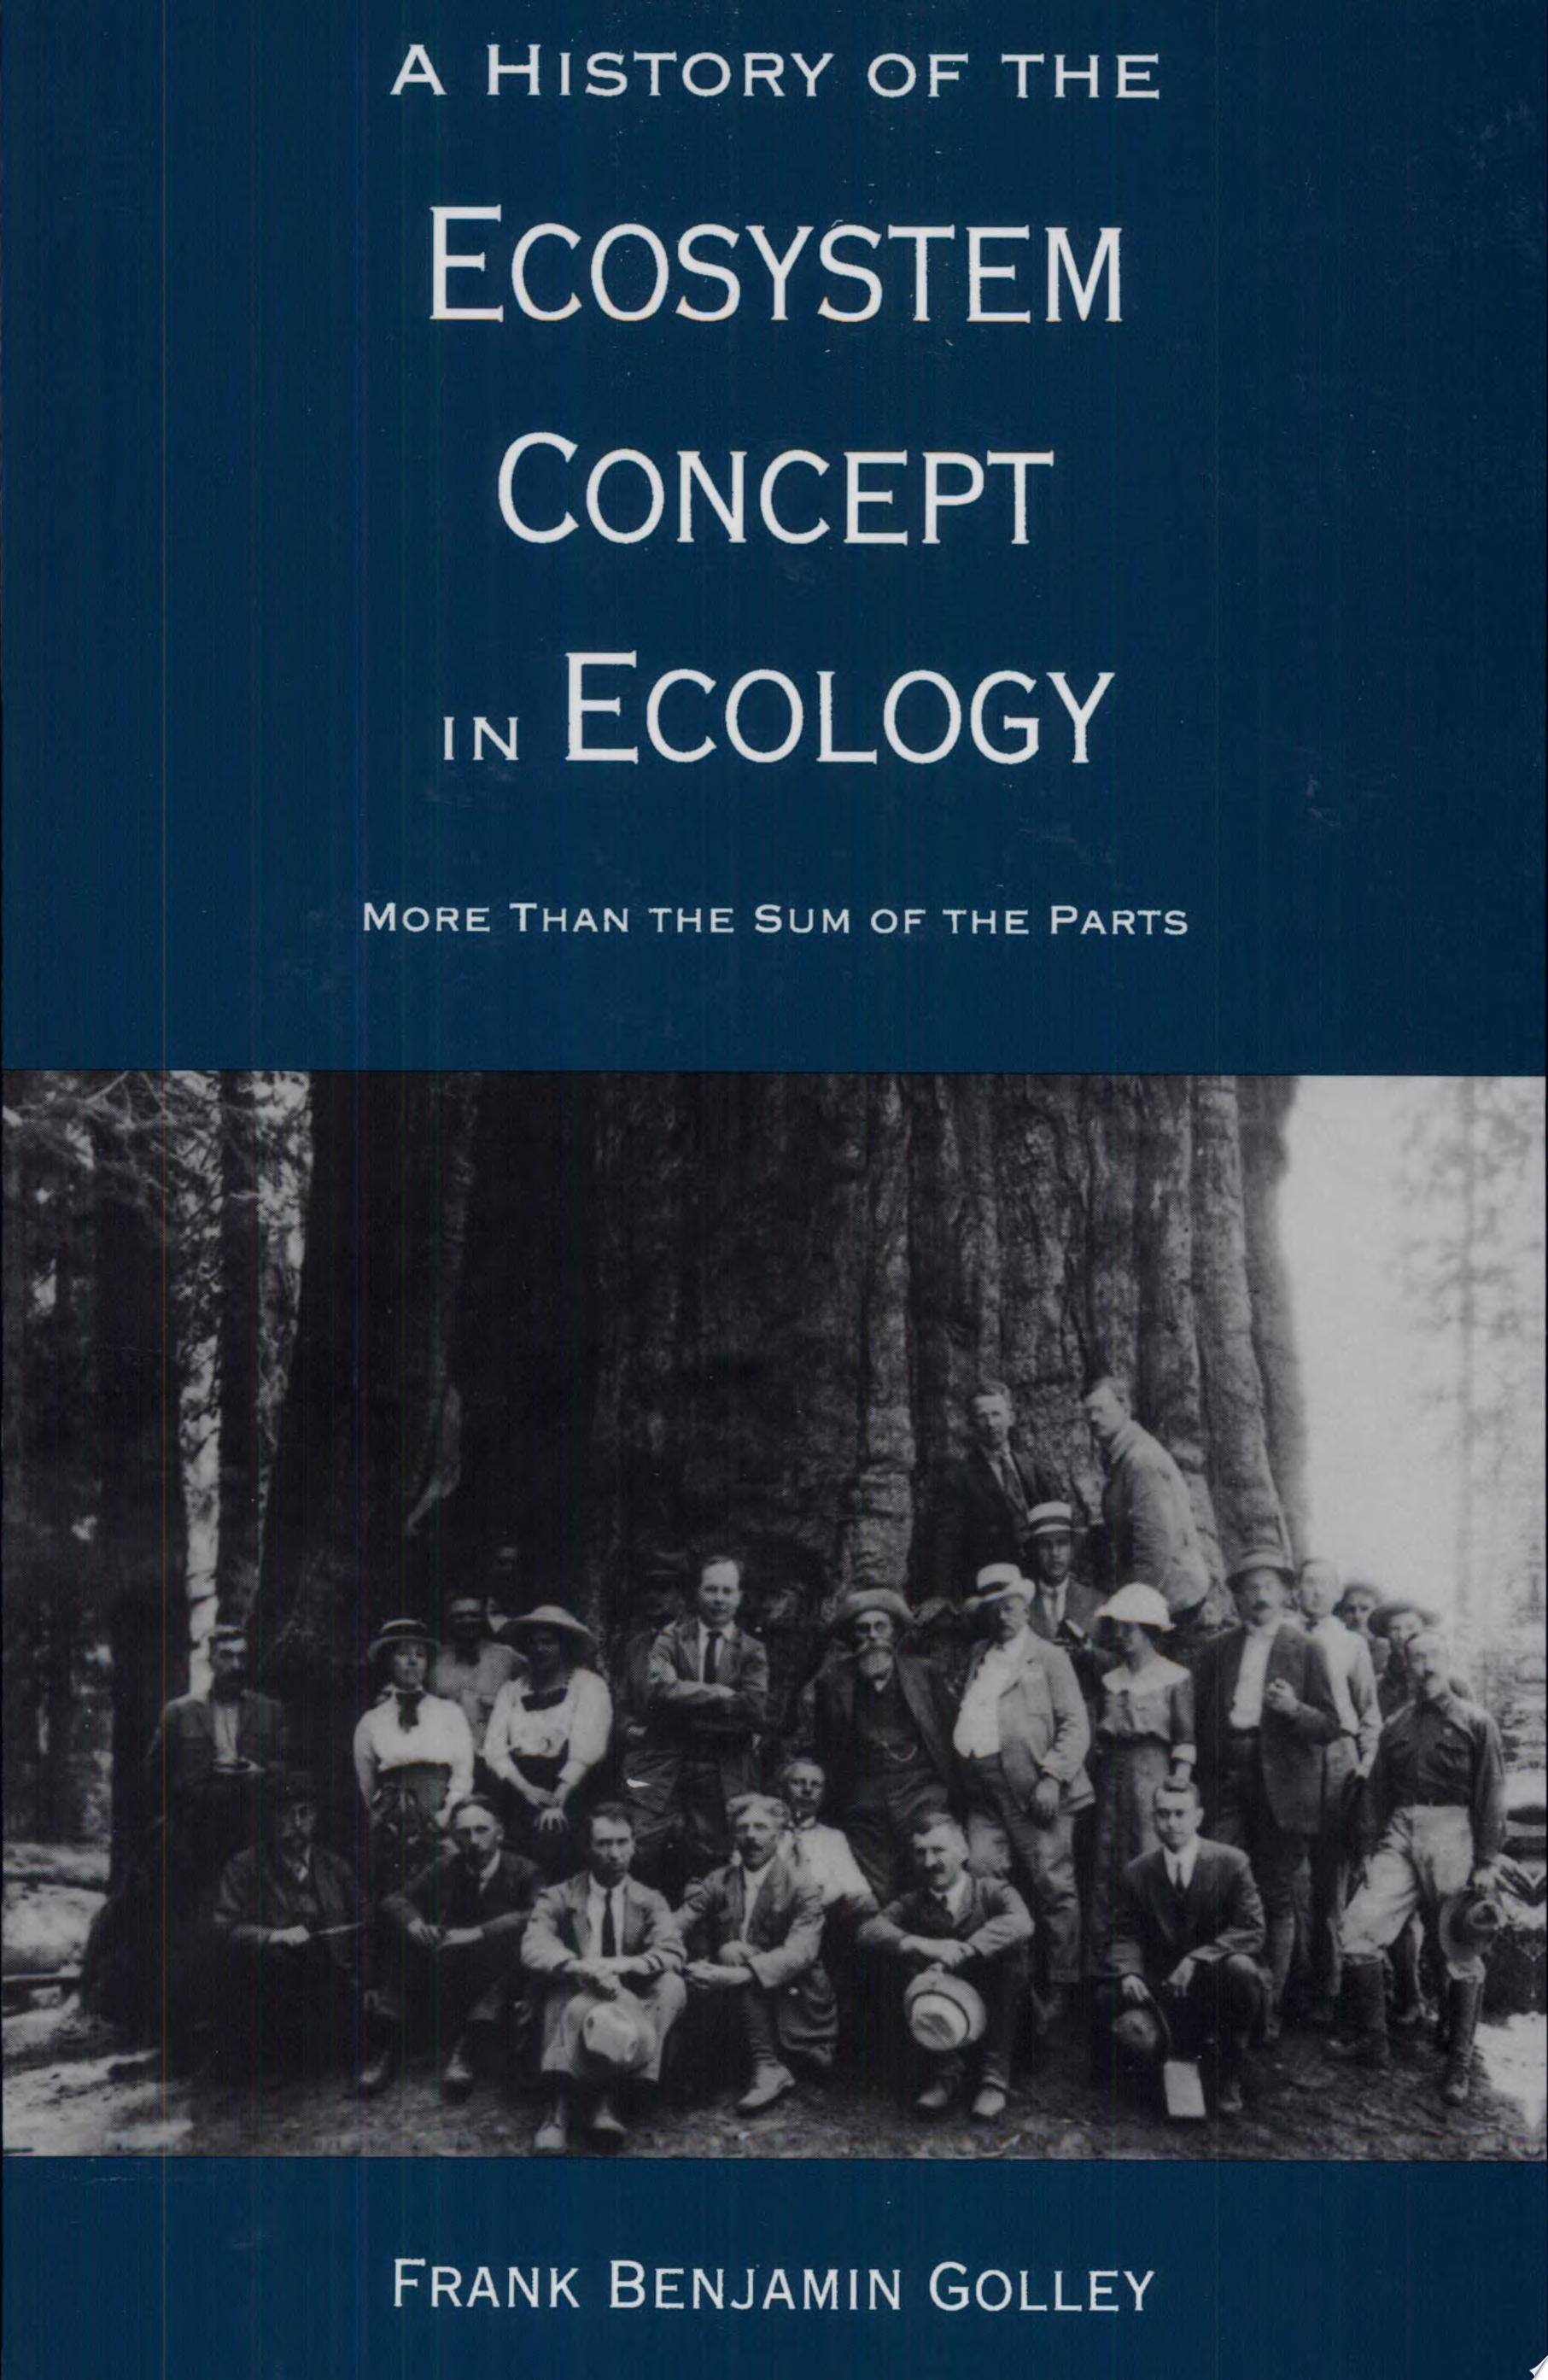 A History of the Ecosystem Concept in Ecology